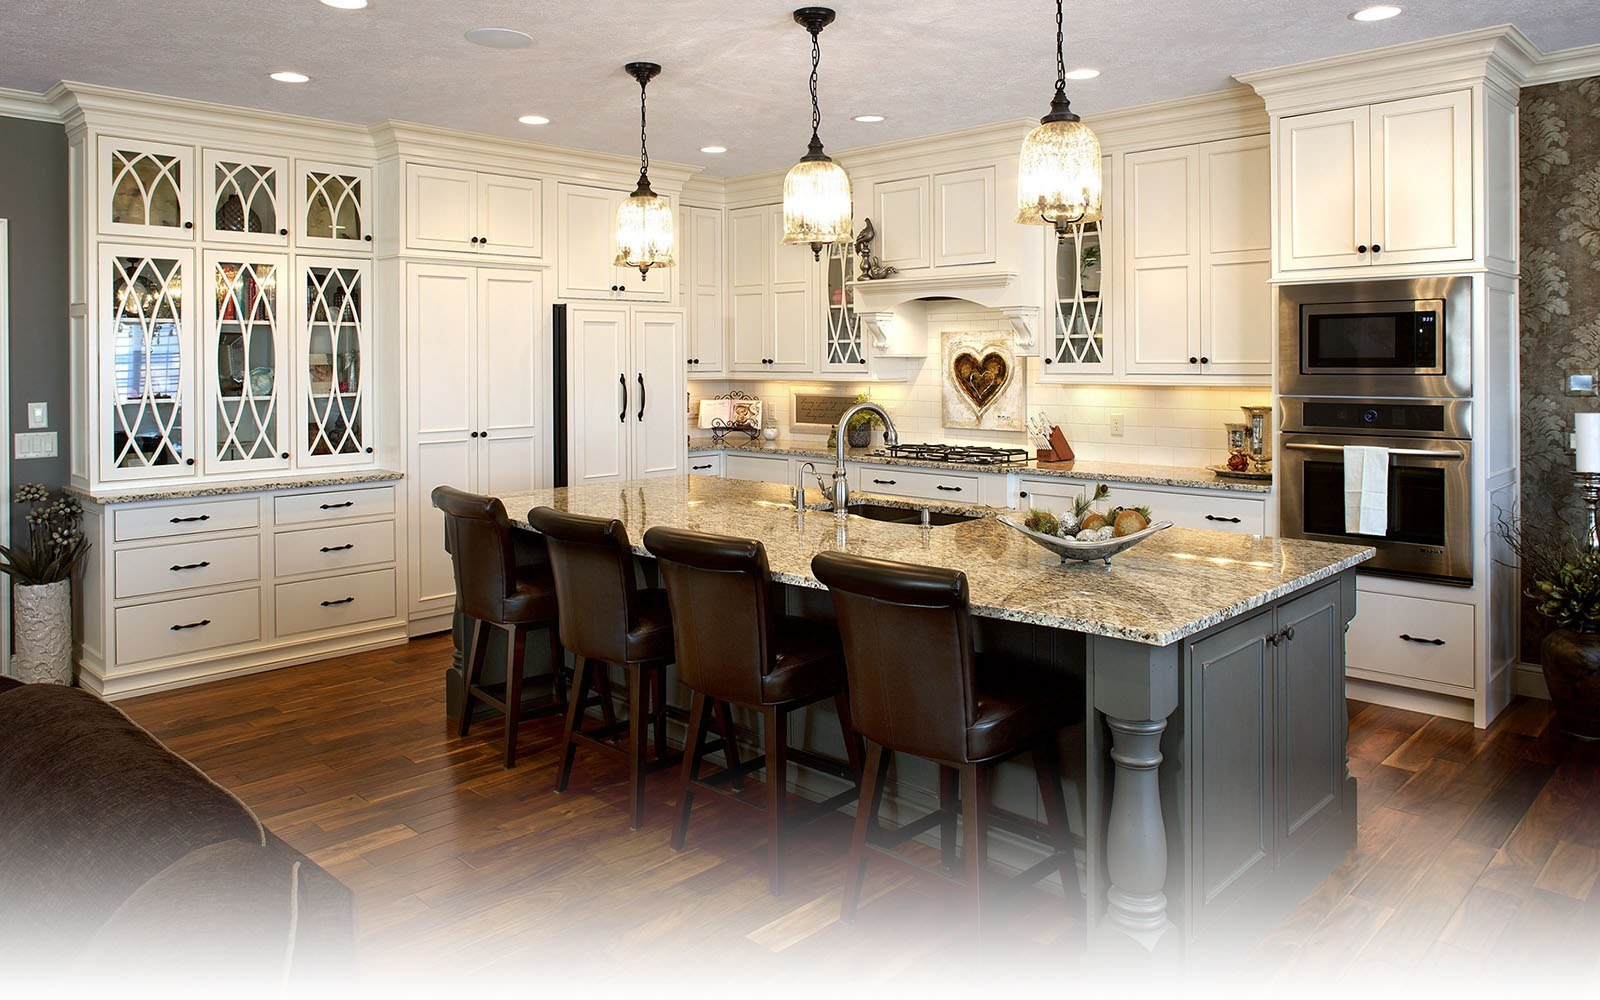 Custom Kitchen Cabinets kitchen and bath cabinets, design and remodeling - norfolk kitchen